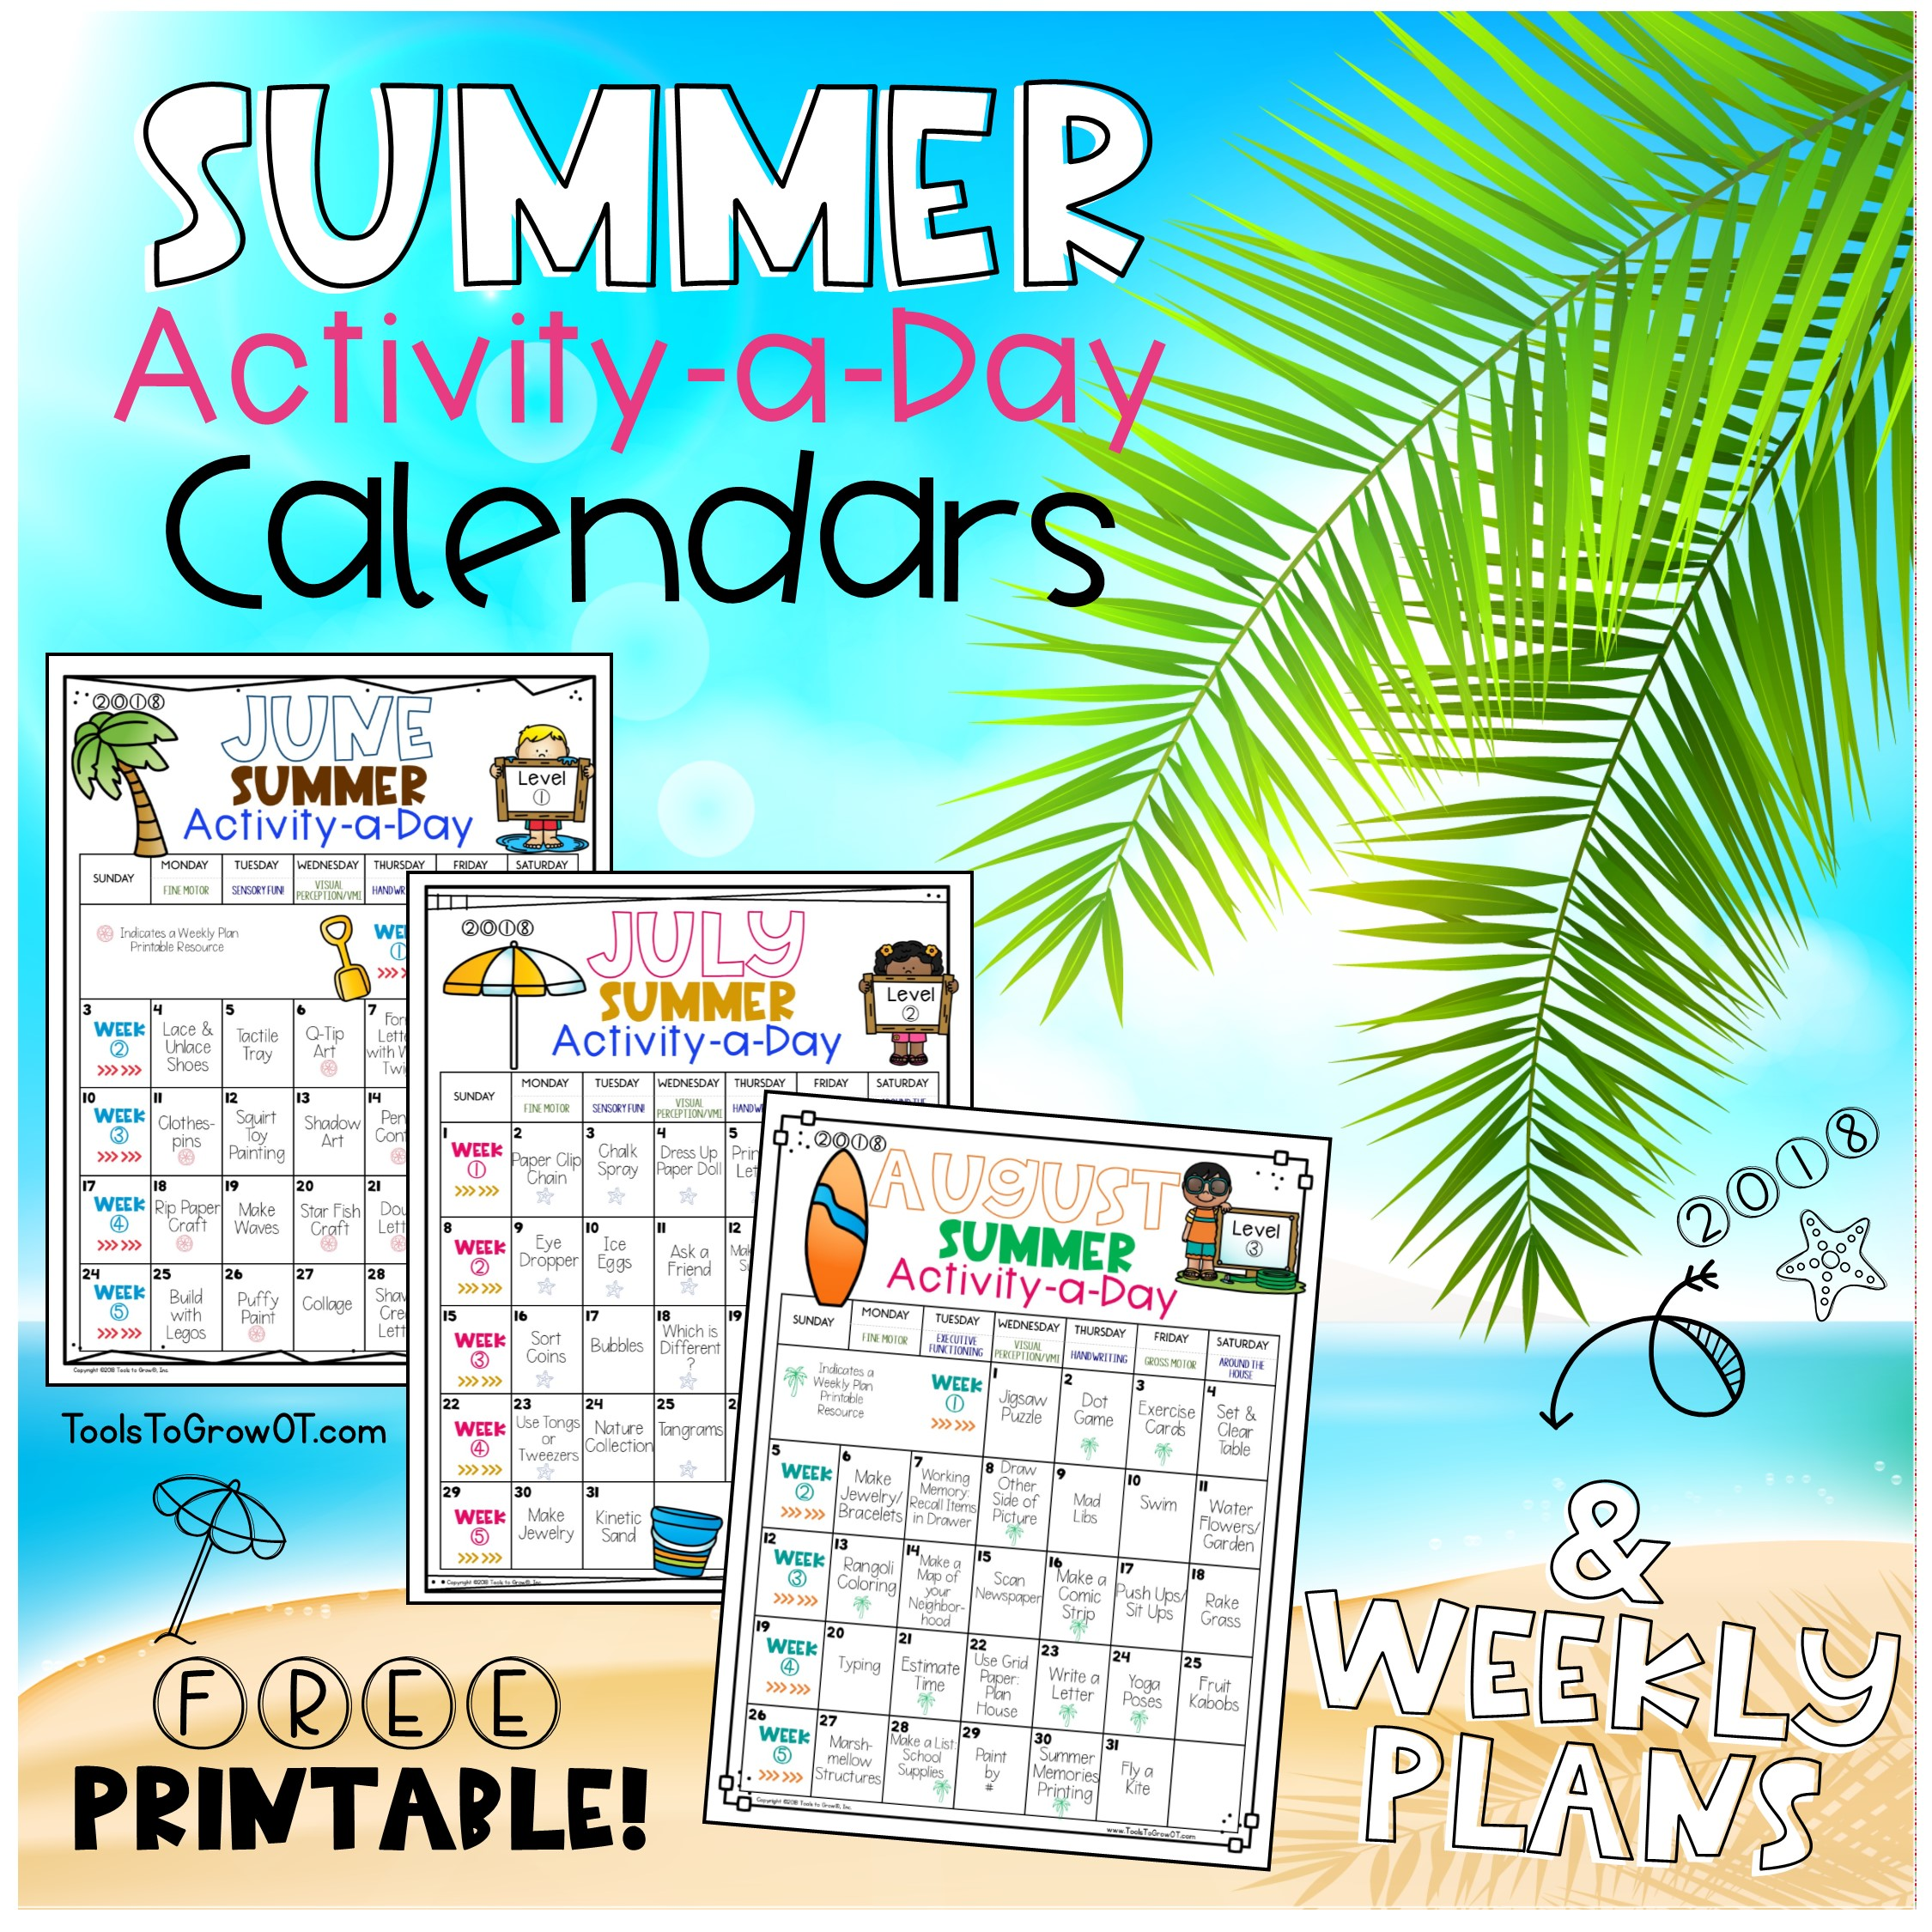 Activity-a-Day Calendars & Weekly Plans 2018 | Blog | Tools To Grow ...